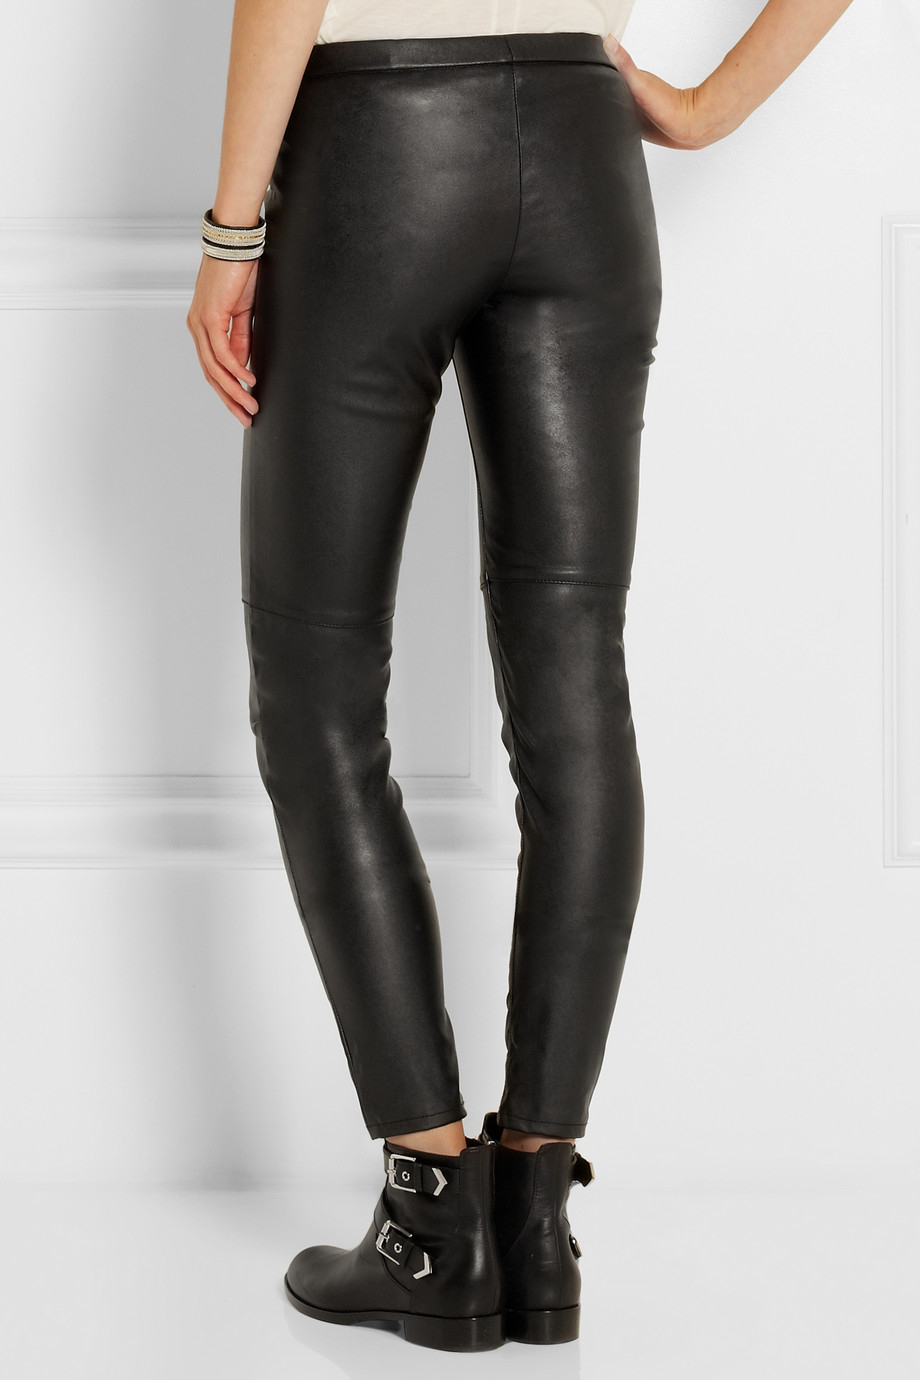 1136b98e48f8a3 Gallery. Previously sold at: NET-A-PORTER · Women's Faux Leather Pants ...